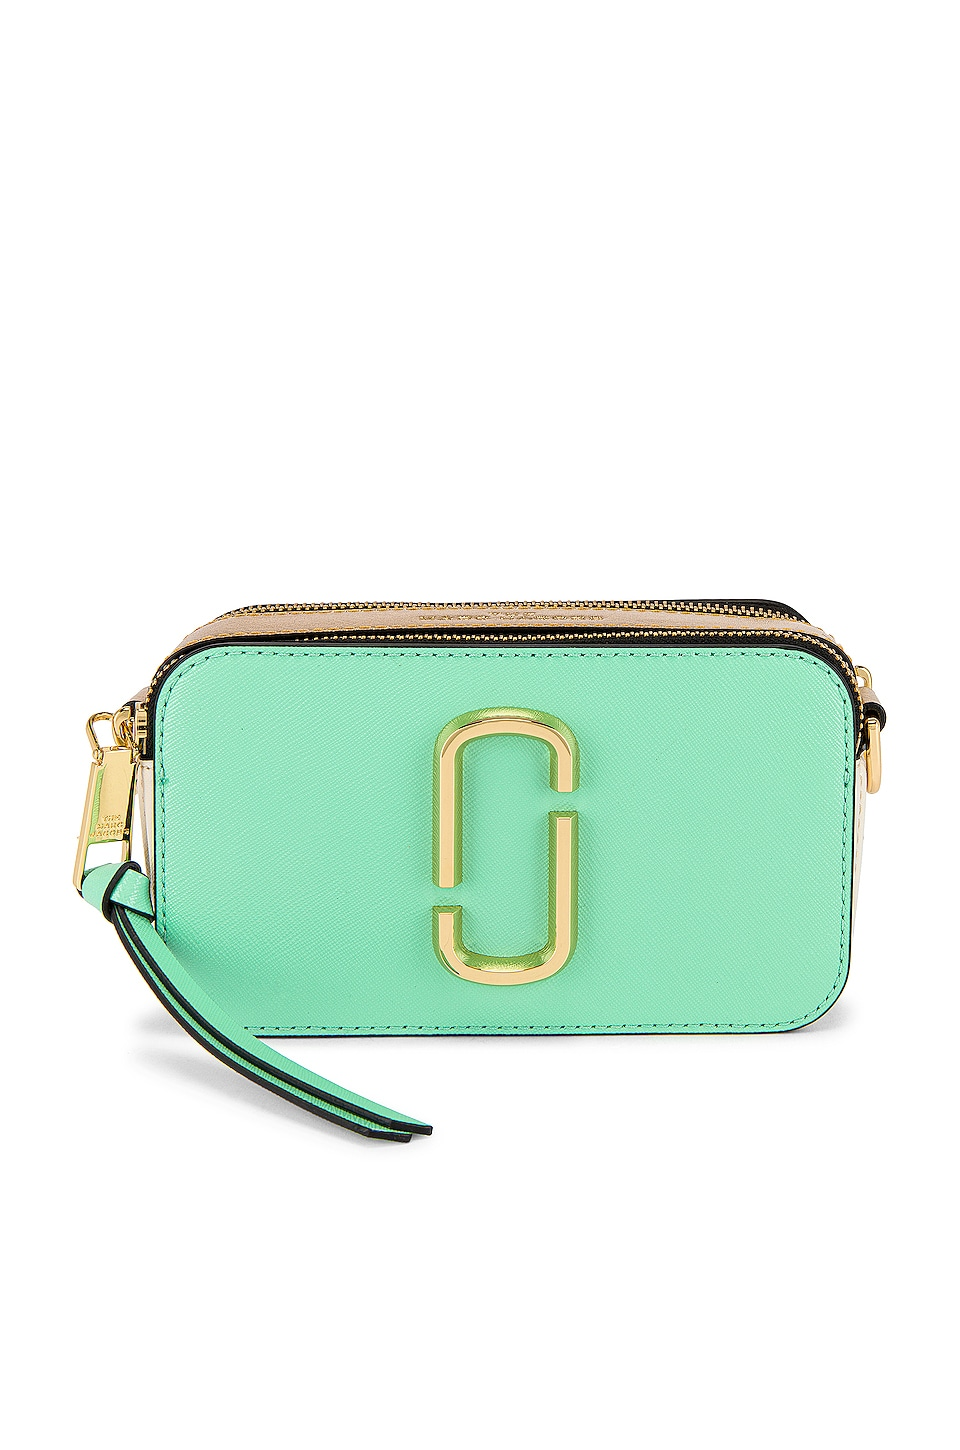 Marc Jacobs Snapshot Bag in Mint Multi